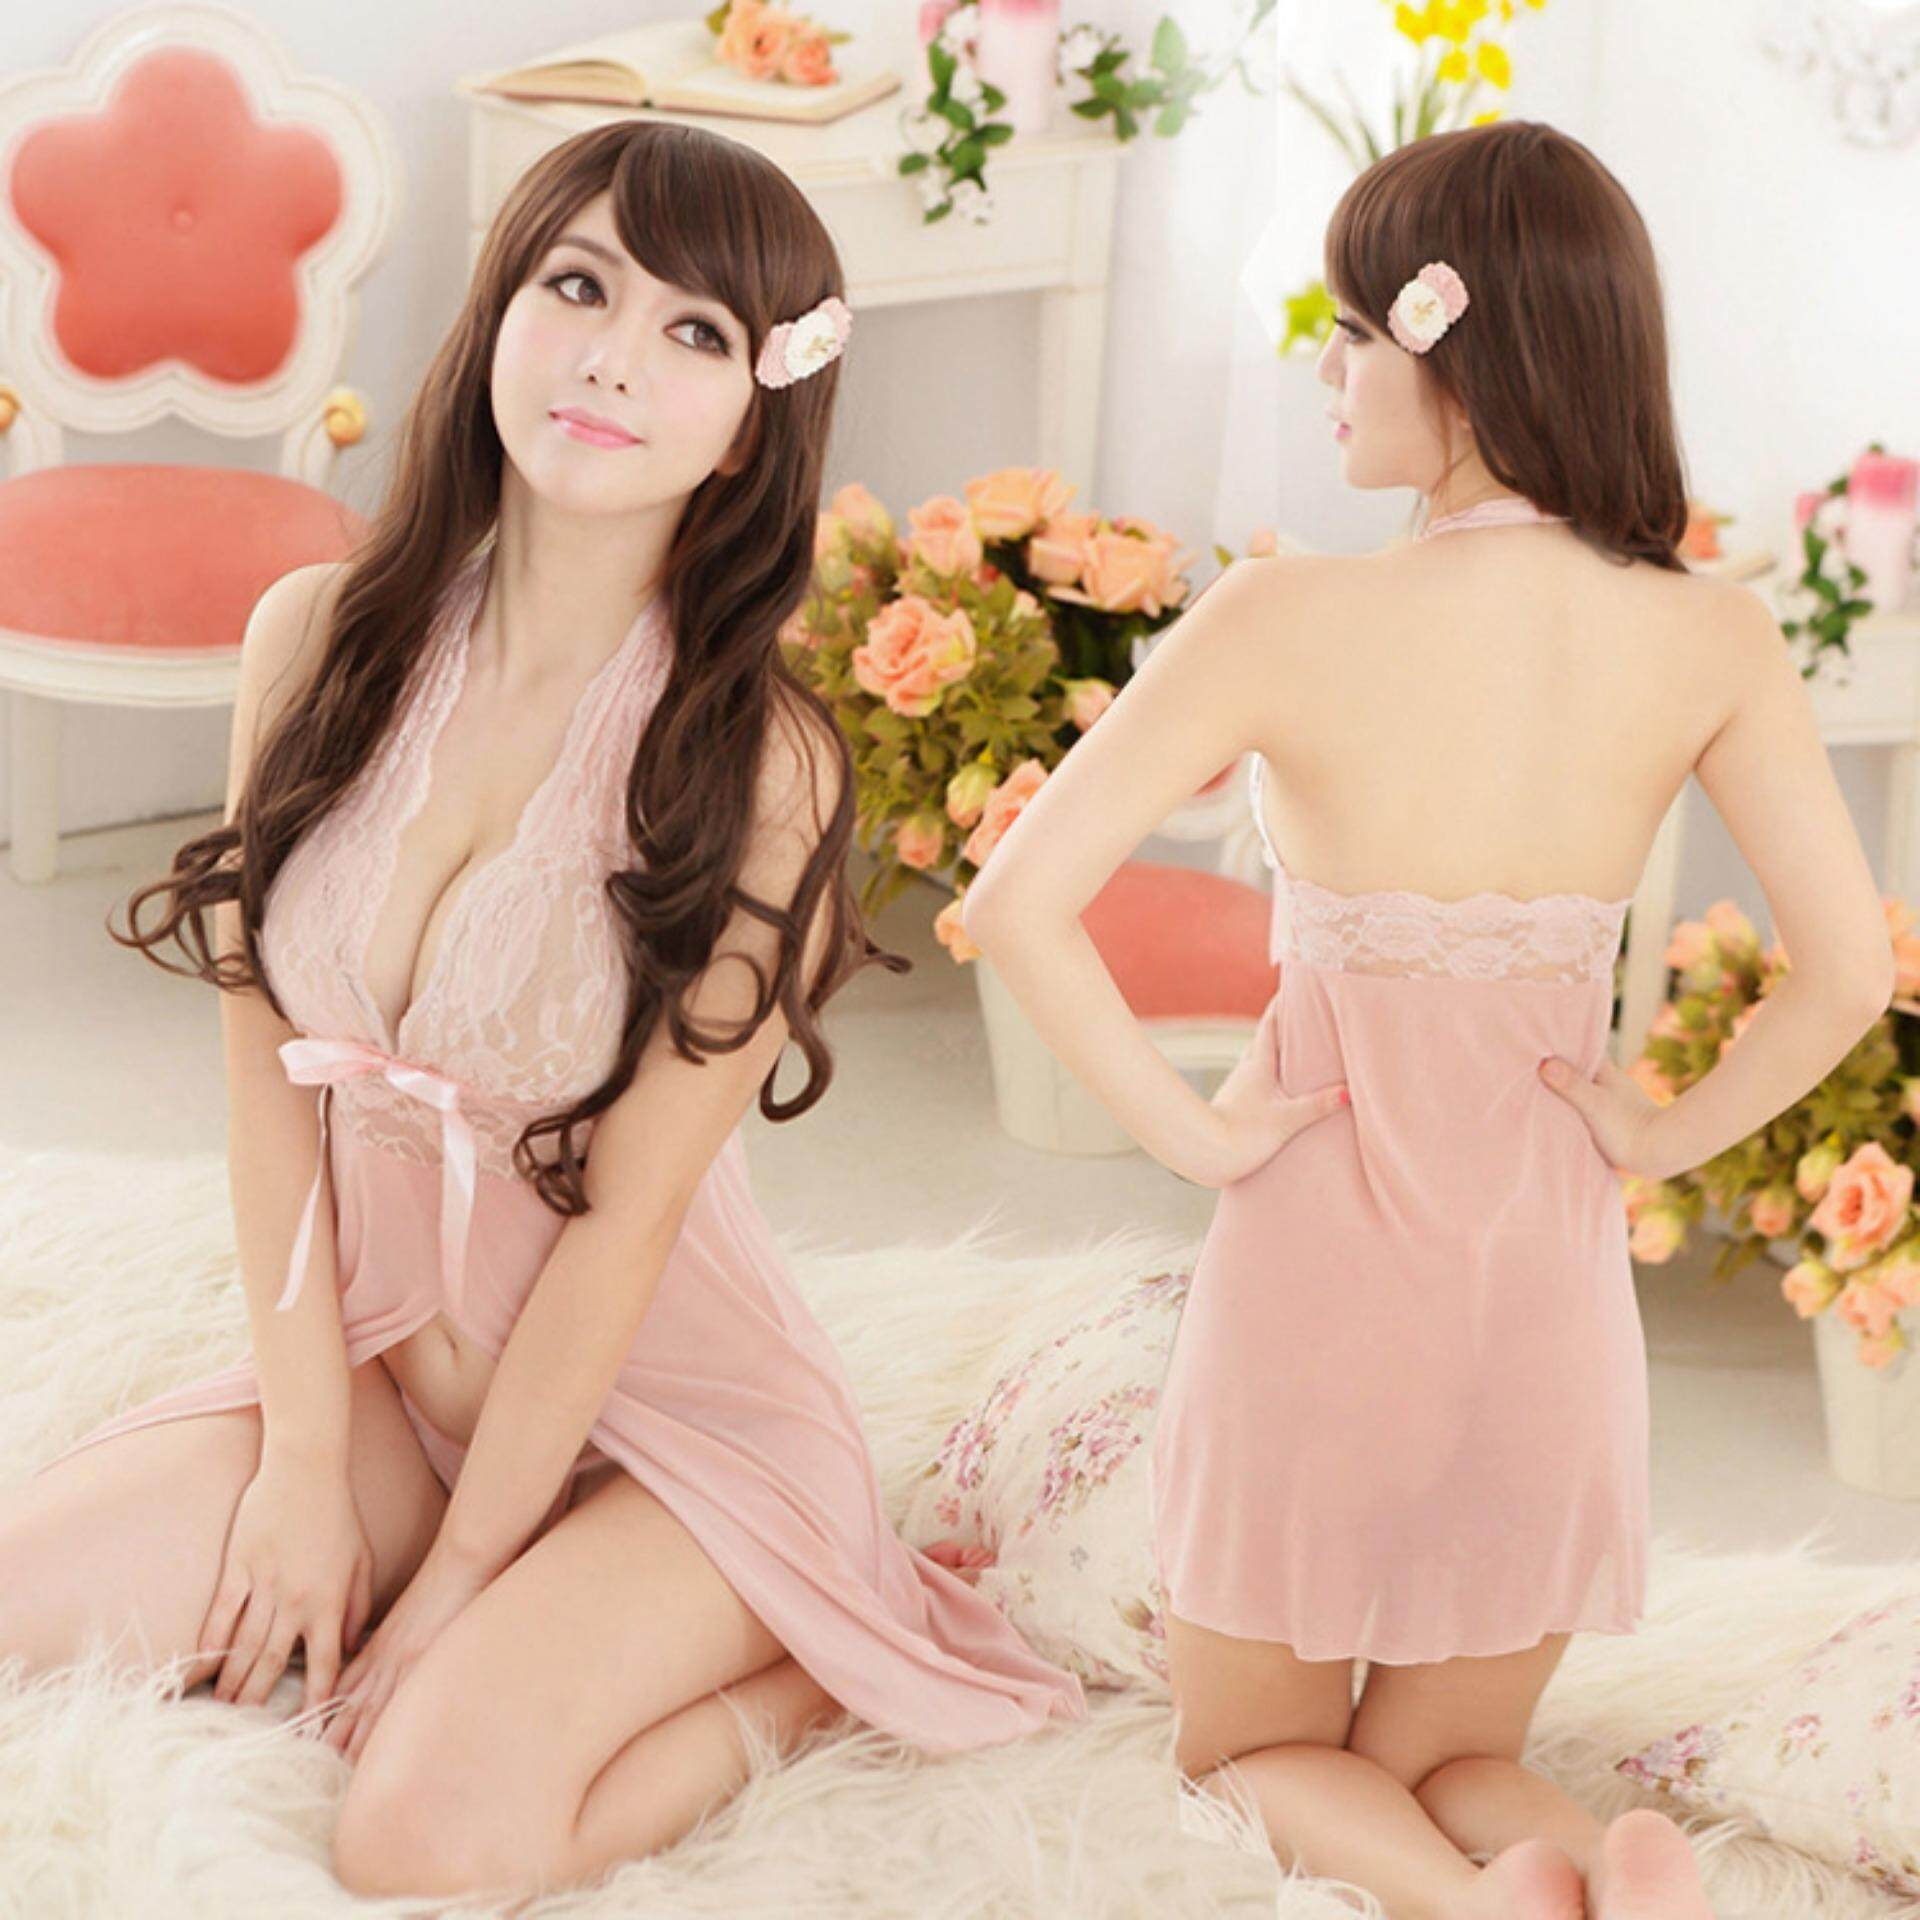 Bolster Store Ladies Women Sexy lingerie Sleepwear Sleeveless Pajamas Lace Sexy Comfortable Wear (Pink)